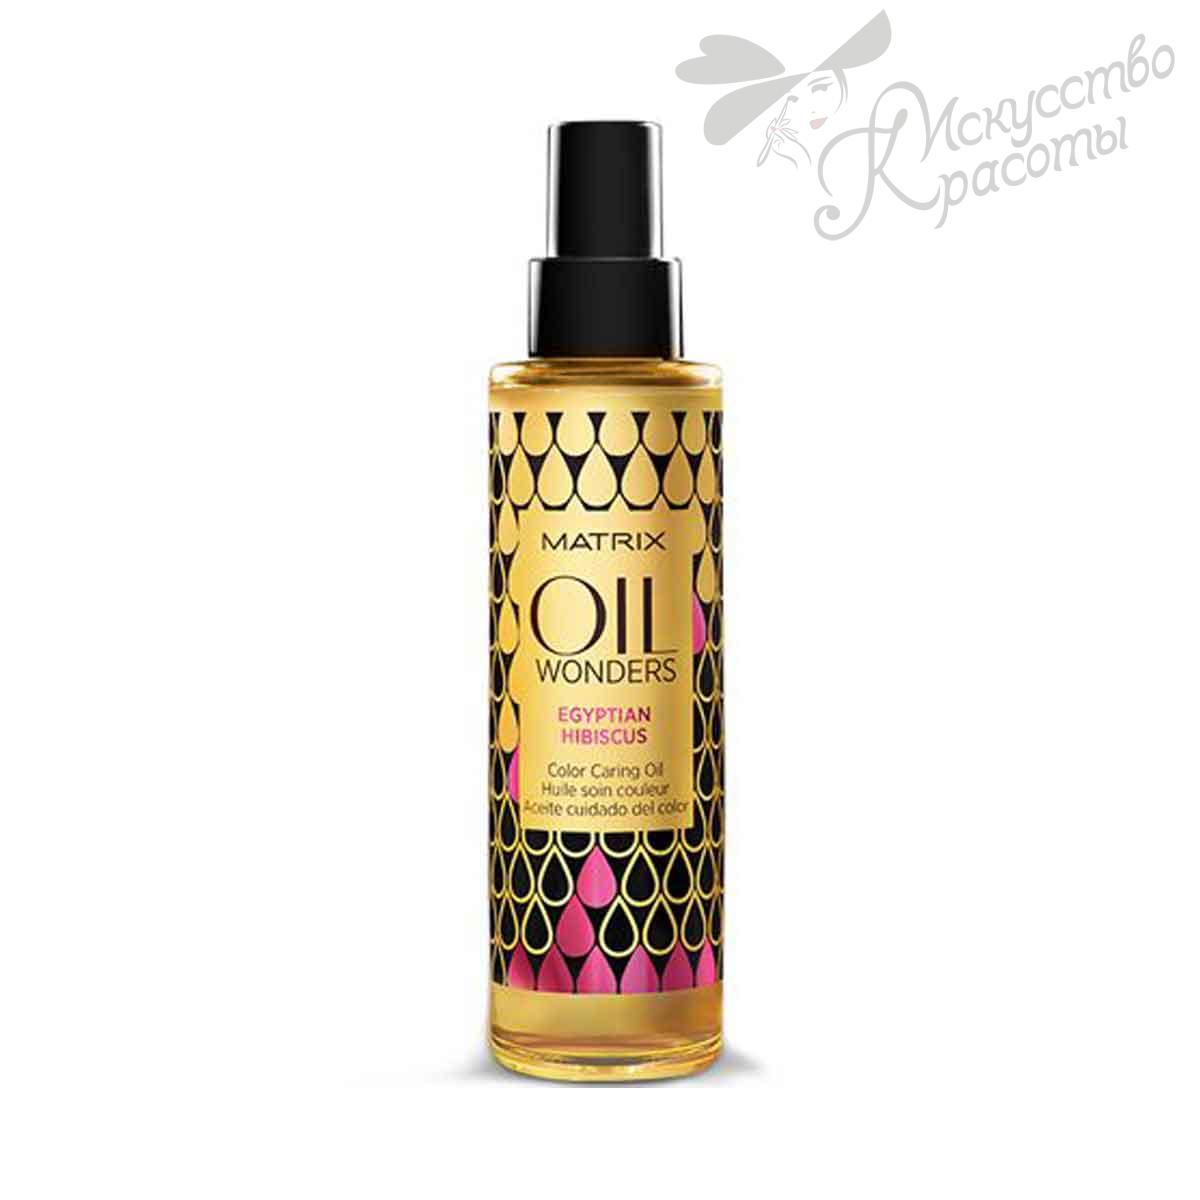 Масло для волос Matrix Oil Wonders Egyptian Hibiscus Color Caring Oil 125 мл